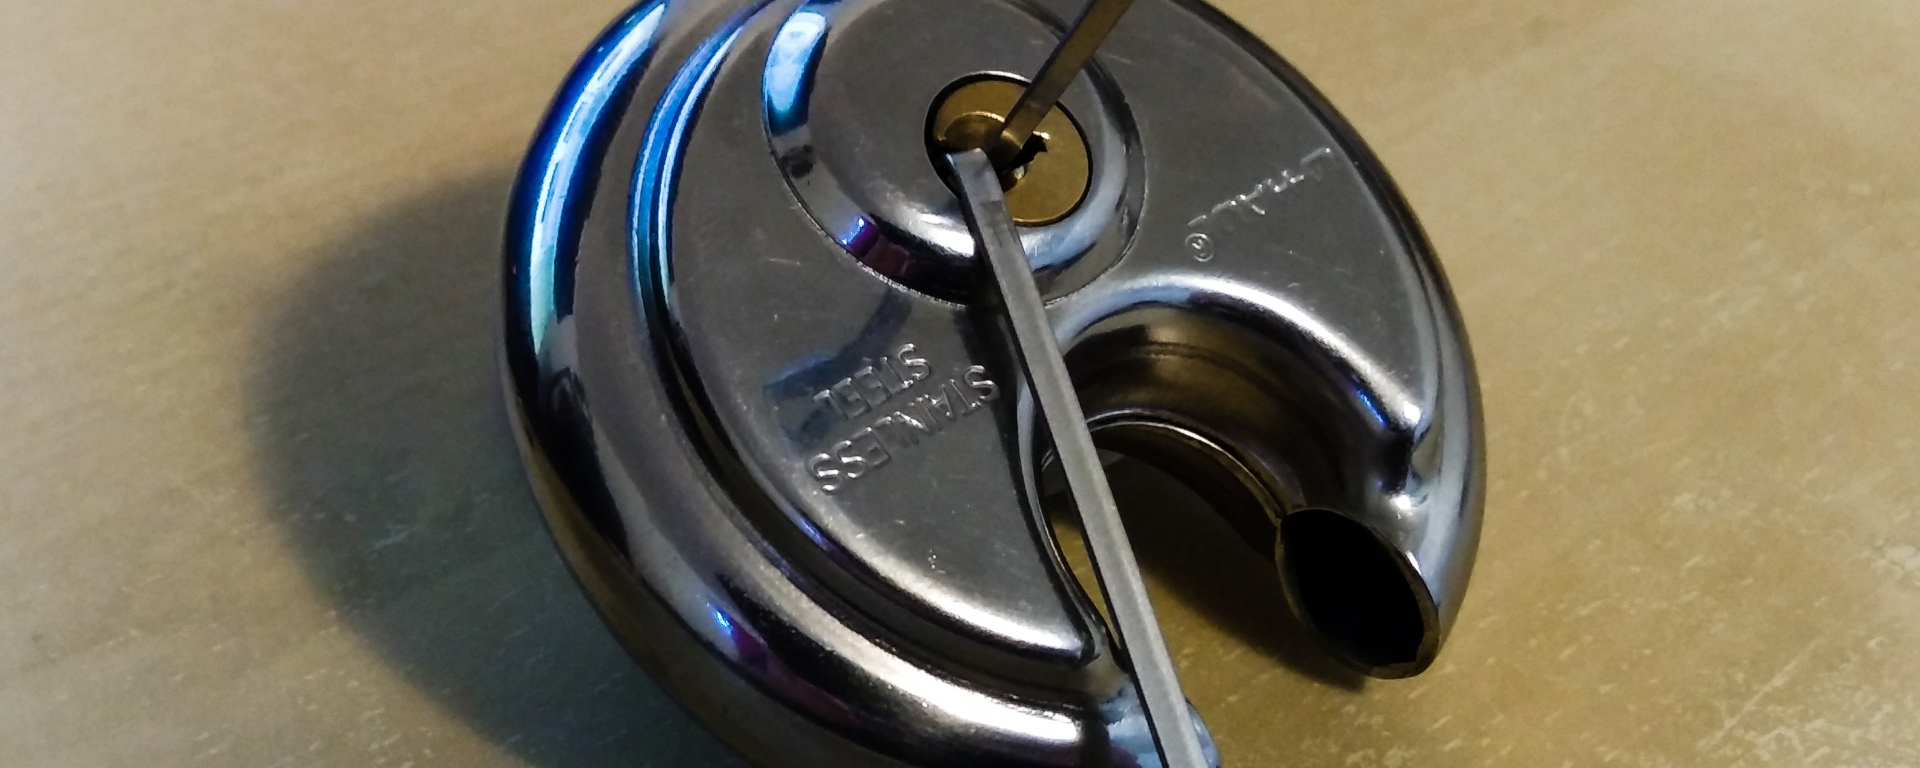 lock with pins inserted into opening